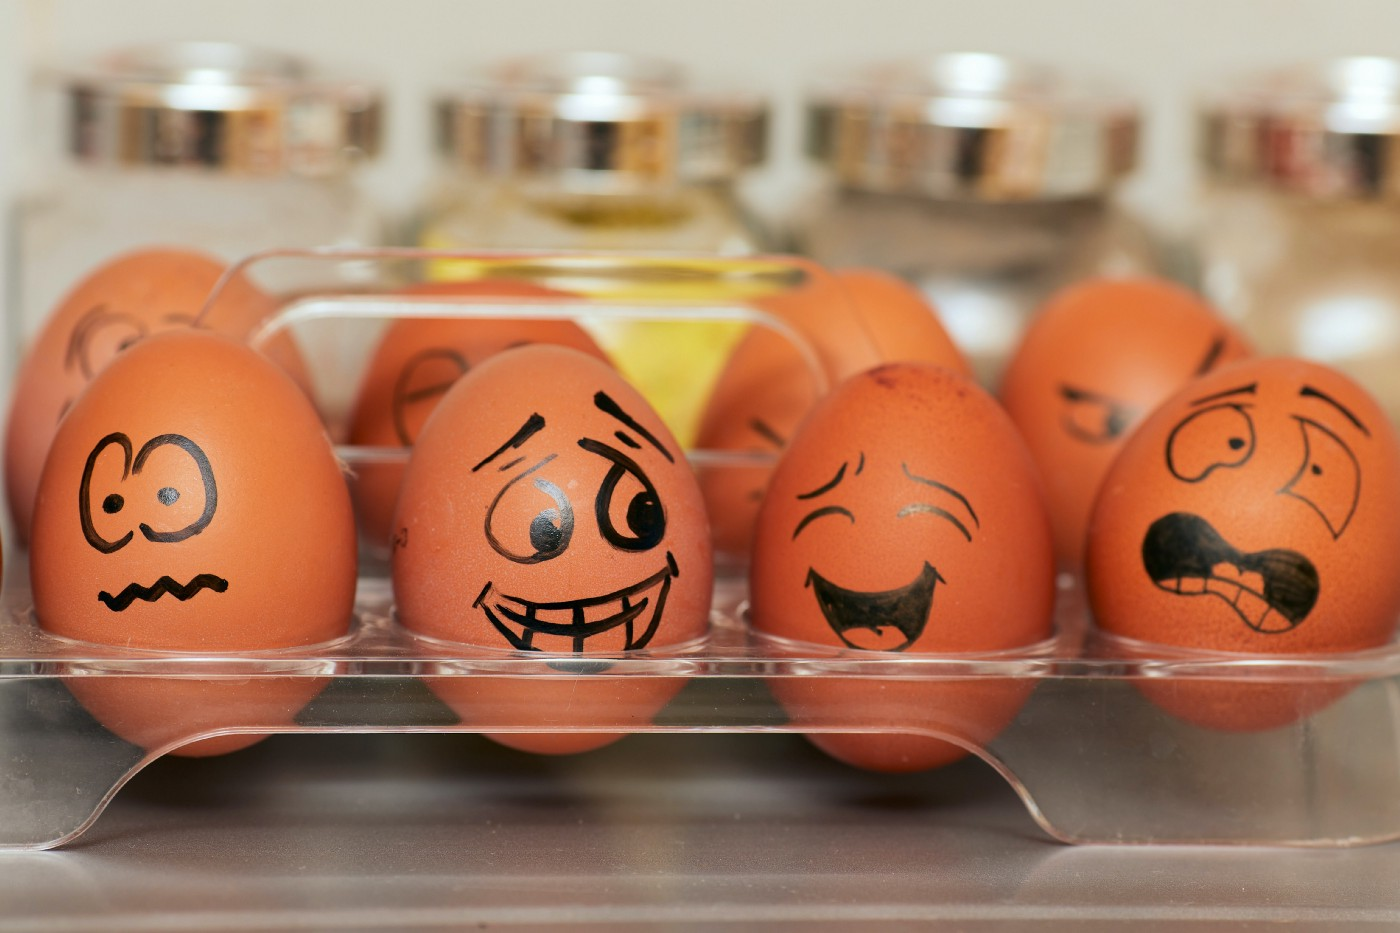 Eggs in a carton painted with faces showing different emotions.